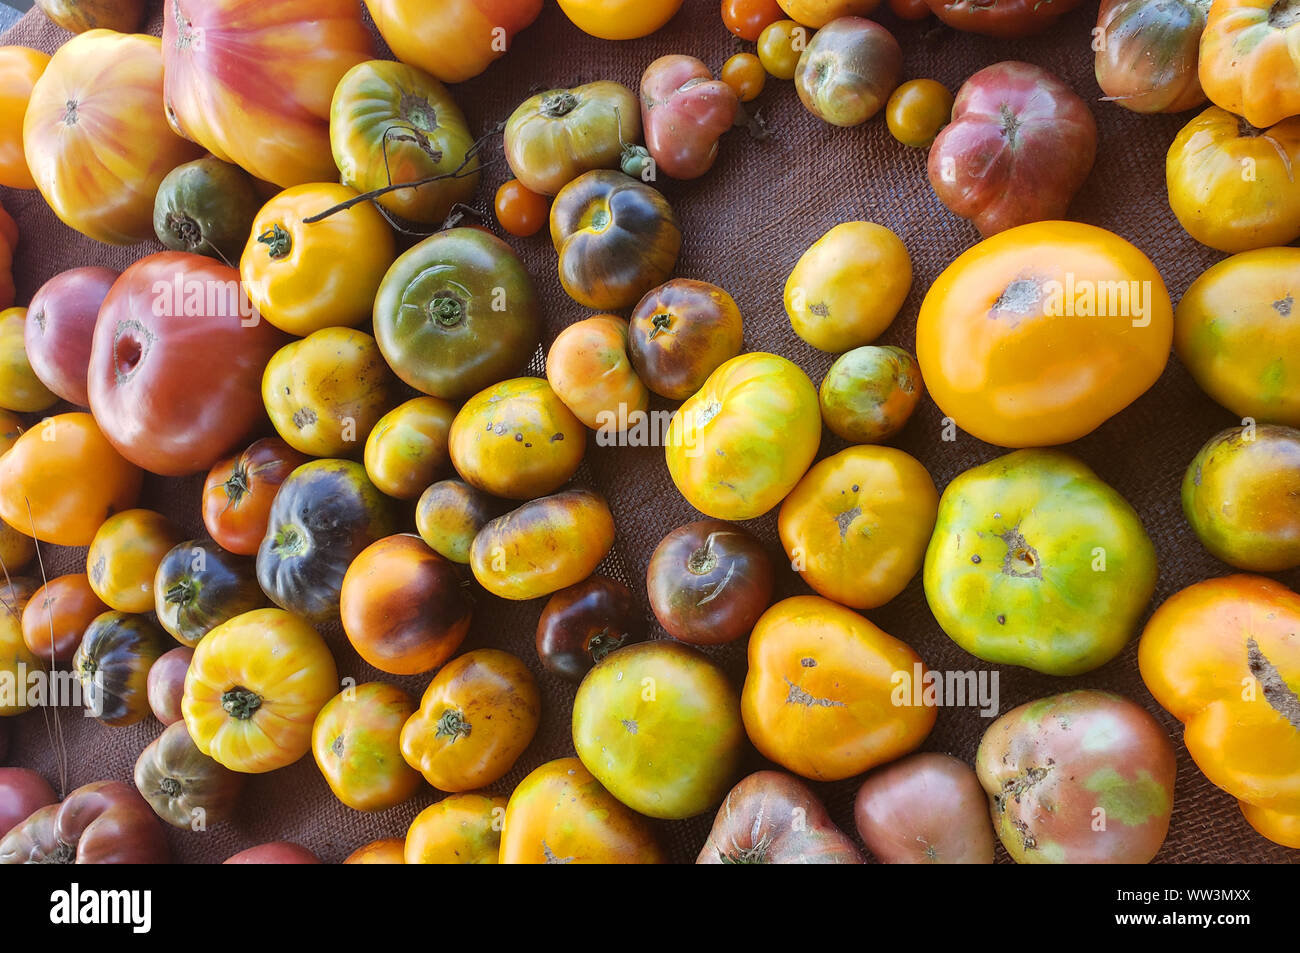 Colorful tomatoes yellow, green and red laying on a tarp on an open farmers market Stock Photo